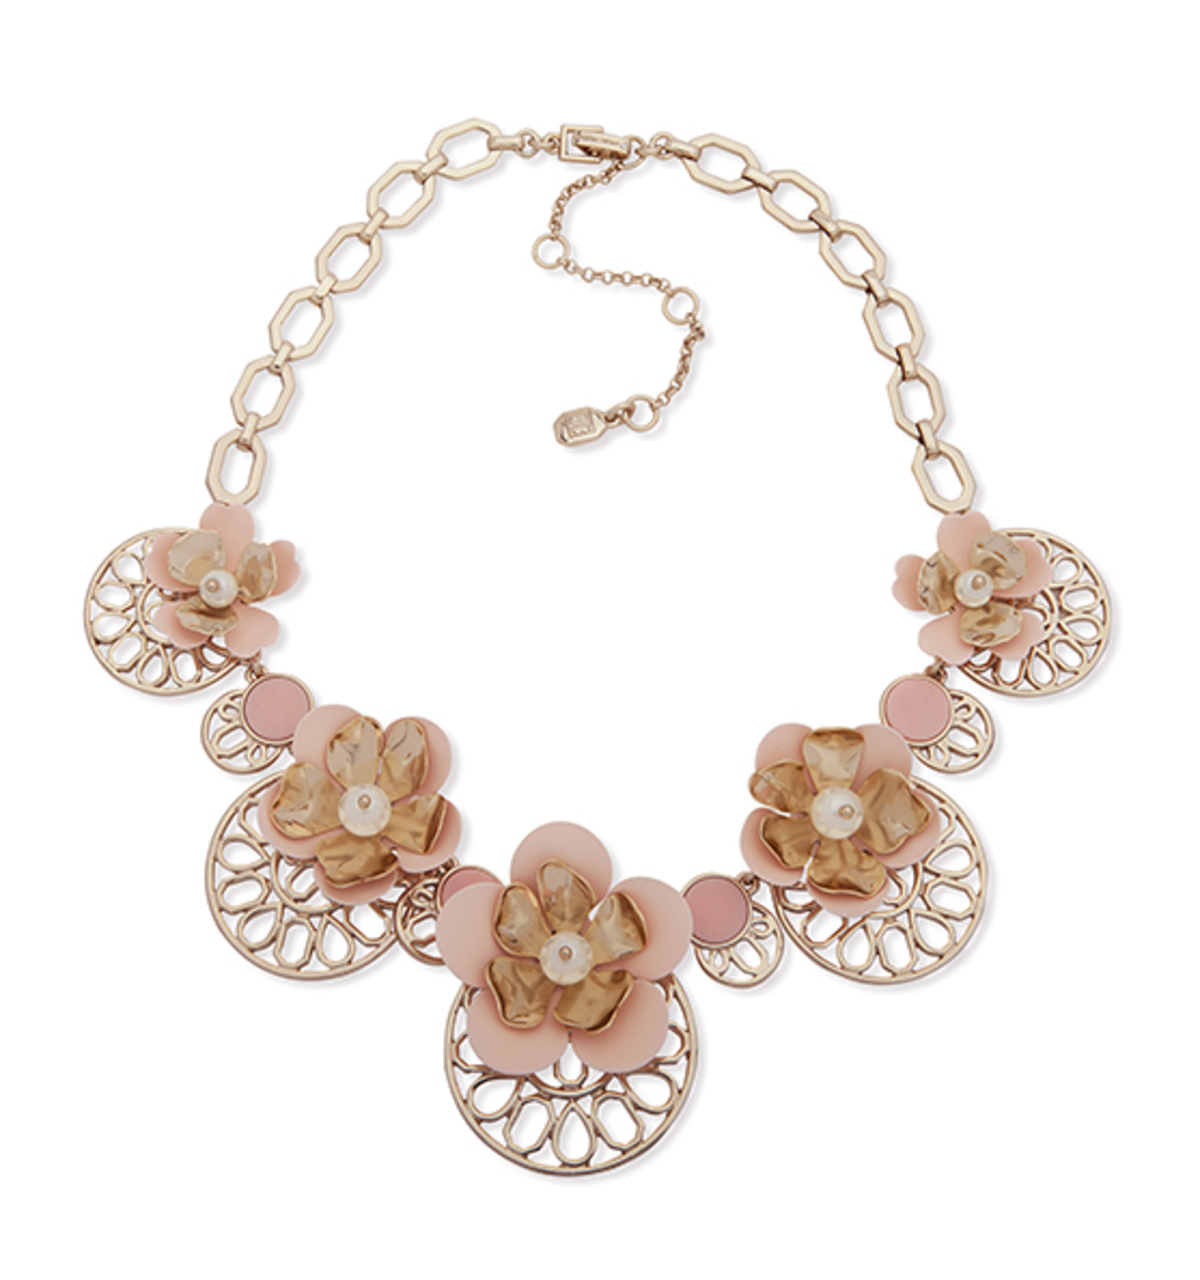 April web spring adjustable drama frontal necklace